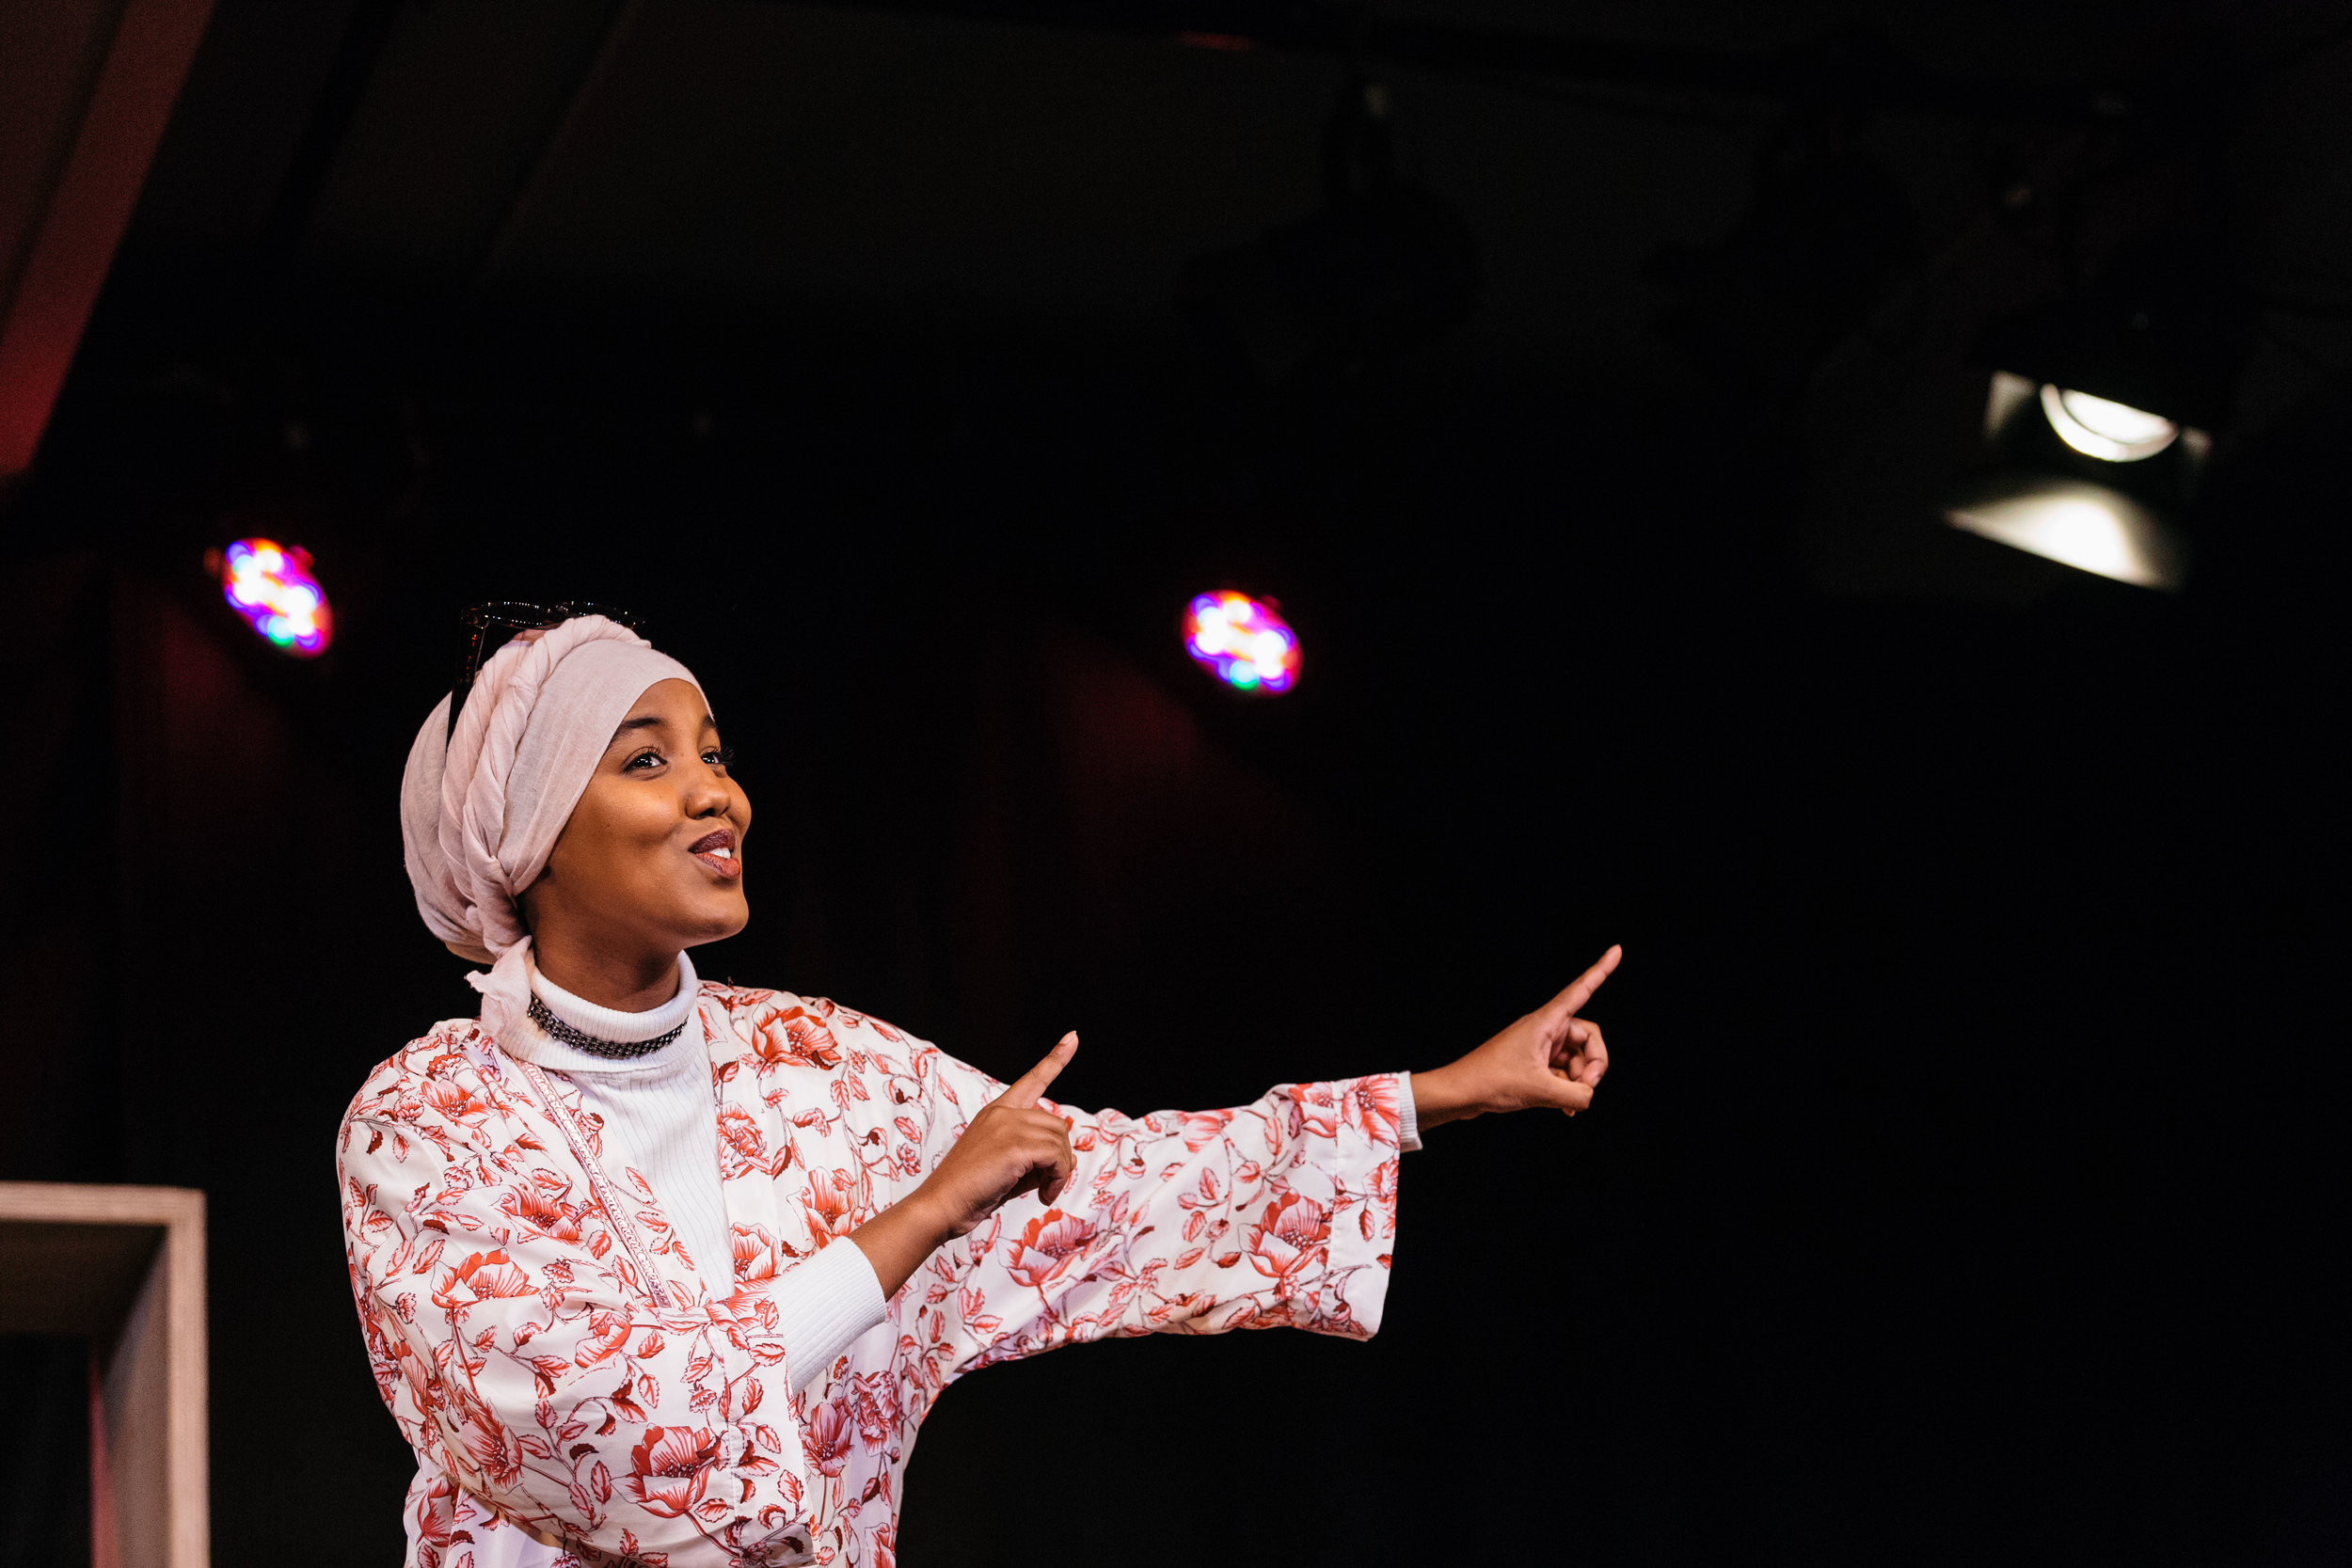 Hibo Muse in Hijabi Monologues London directed by Milli Bhatia-640 ©helenmurray.jpg